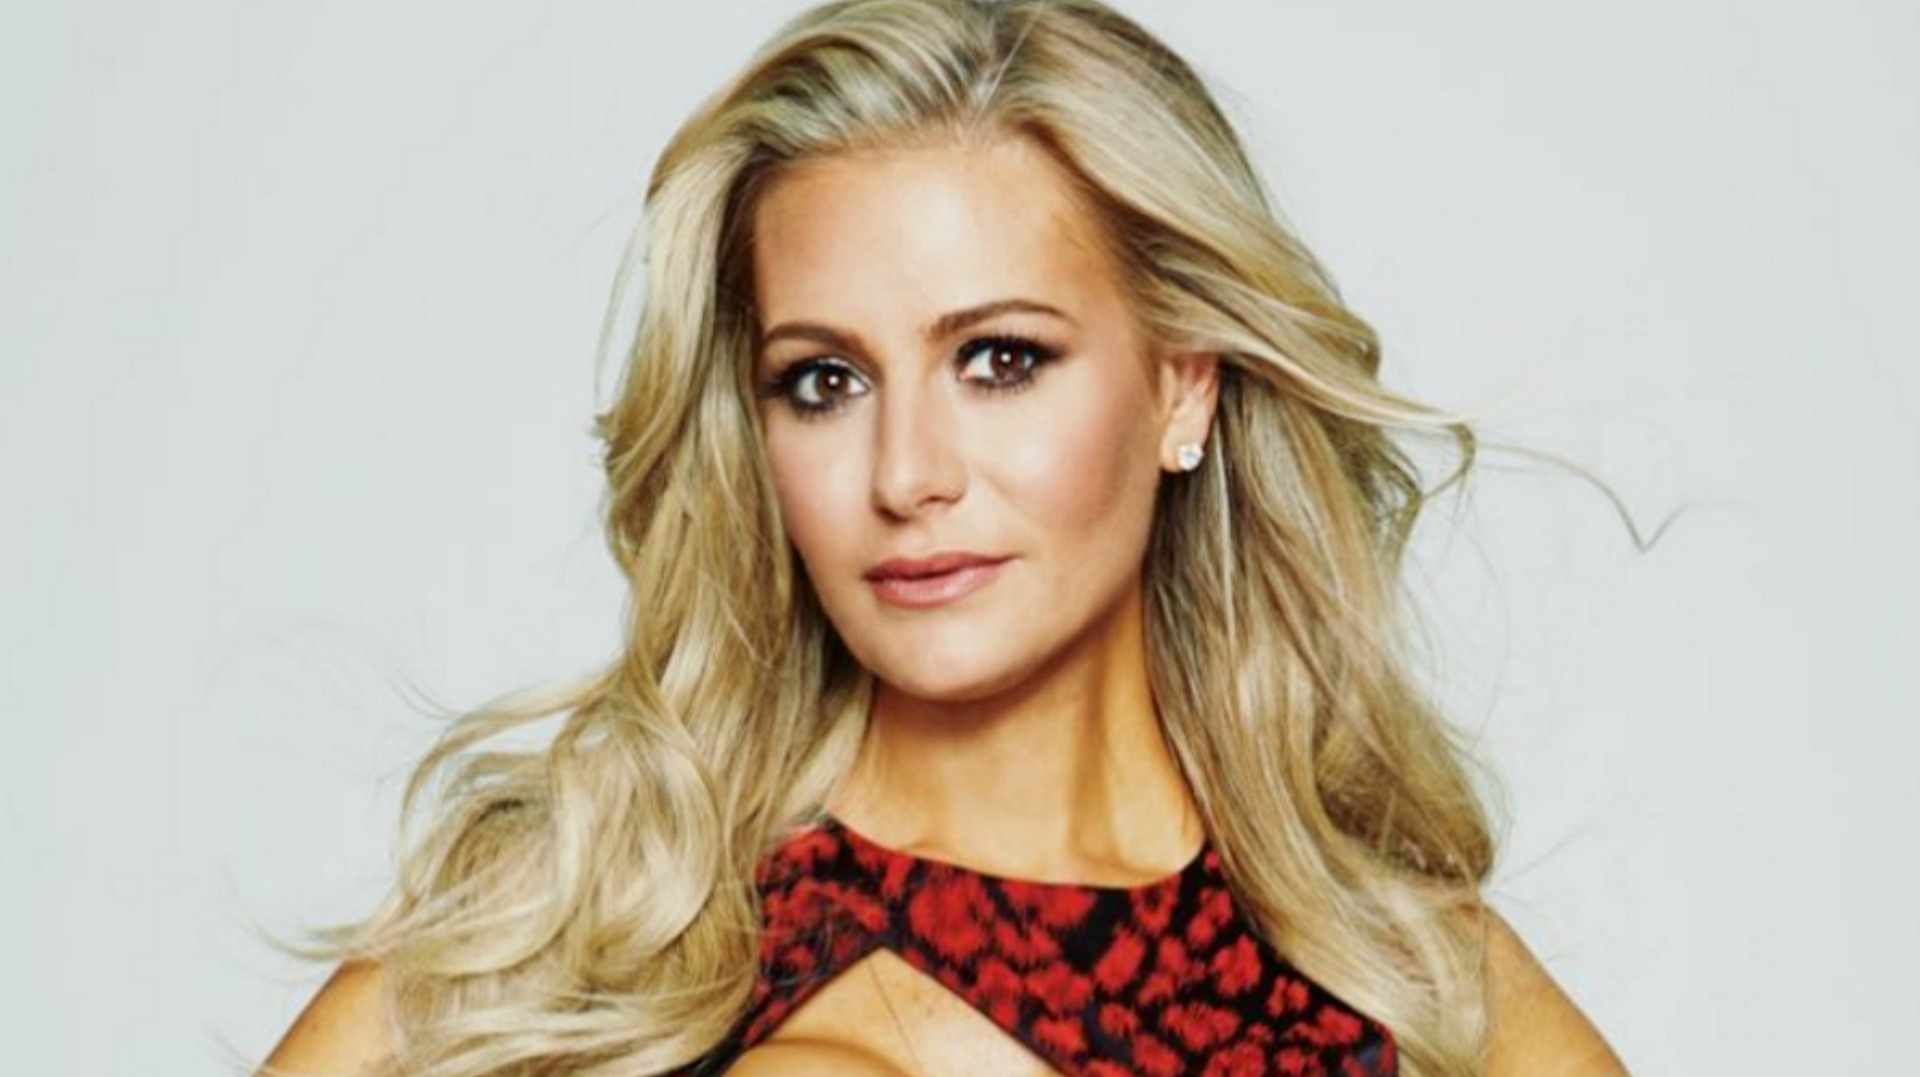 How Old Is Dorit On Housewives Of Beverly Hills Small